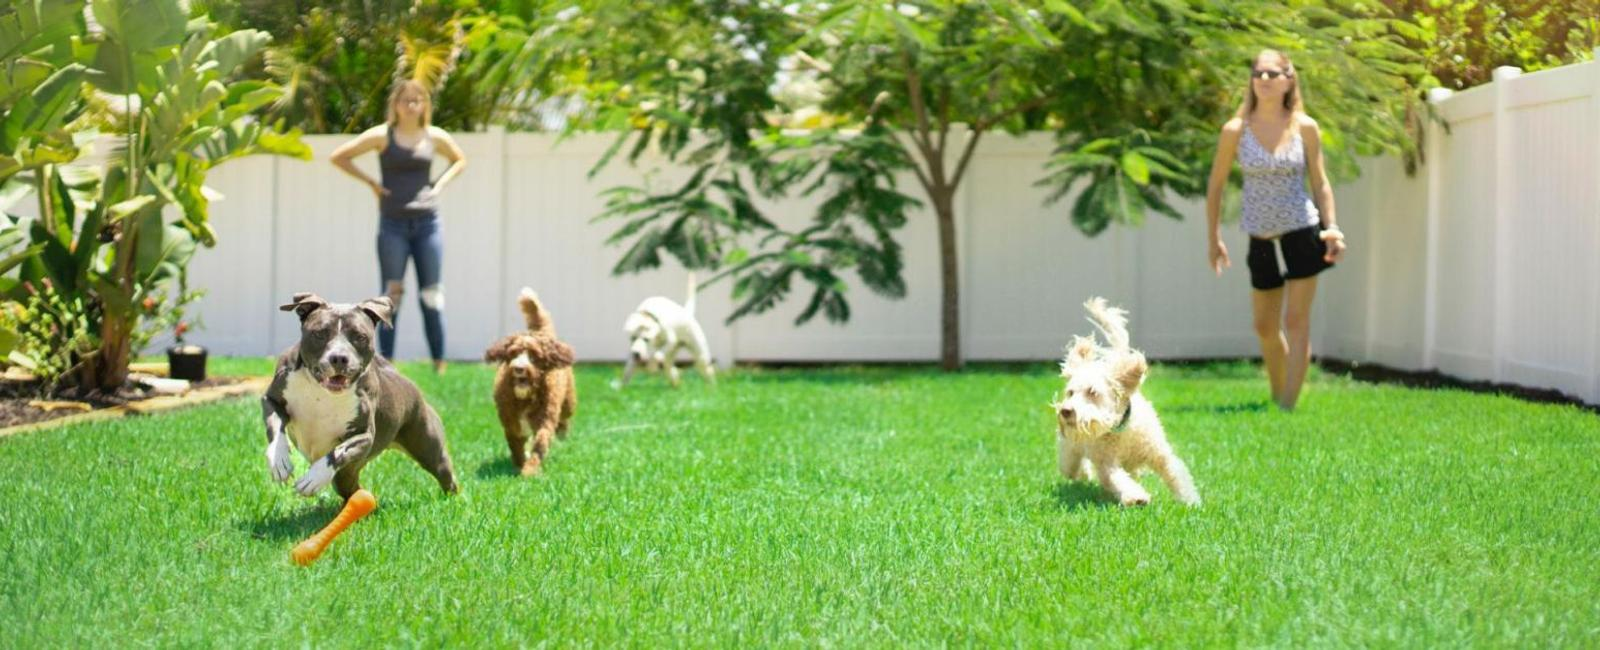 Dog Boarding: All You Need to Know